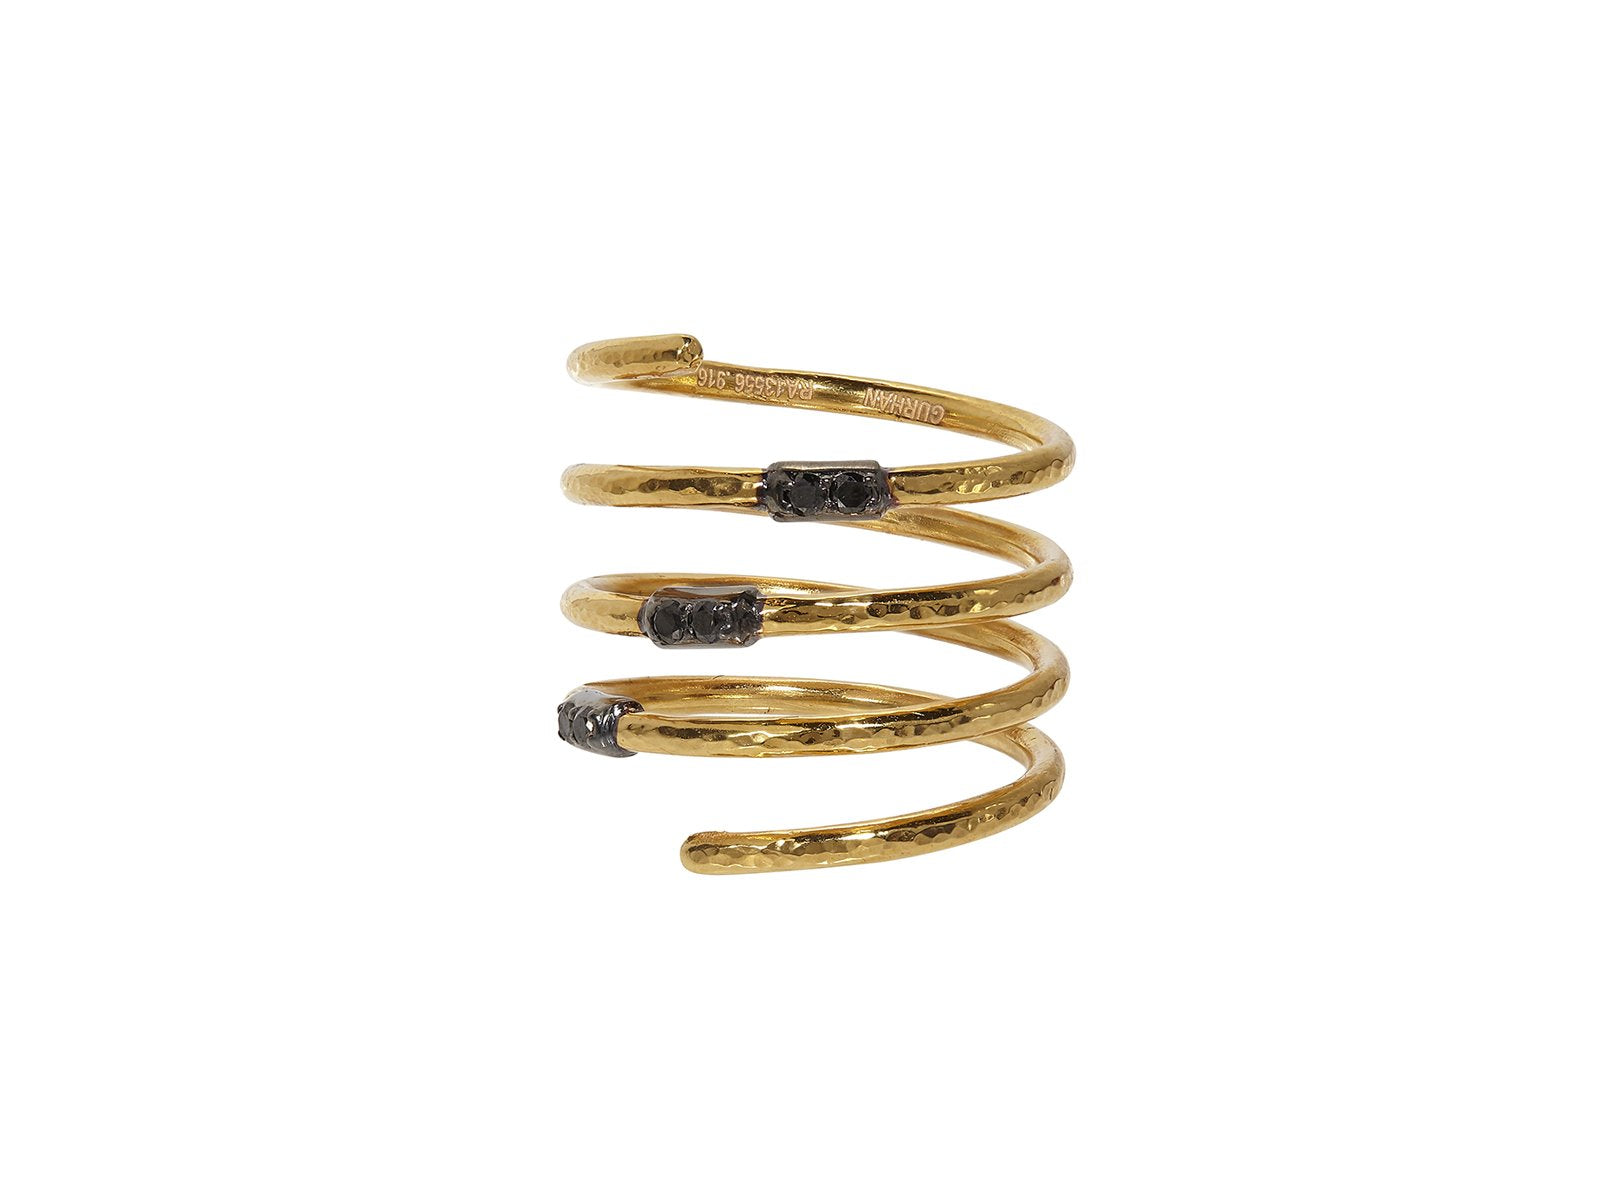 22kt Gold and Black Diamond Spiral Ring